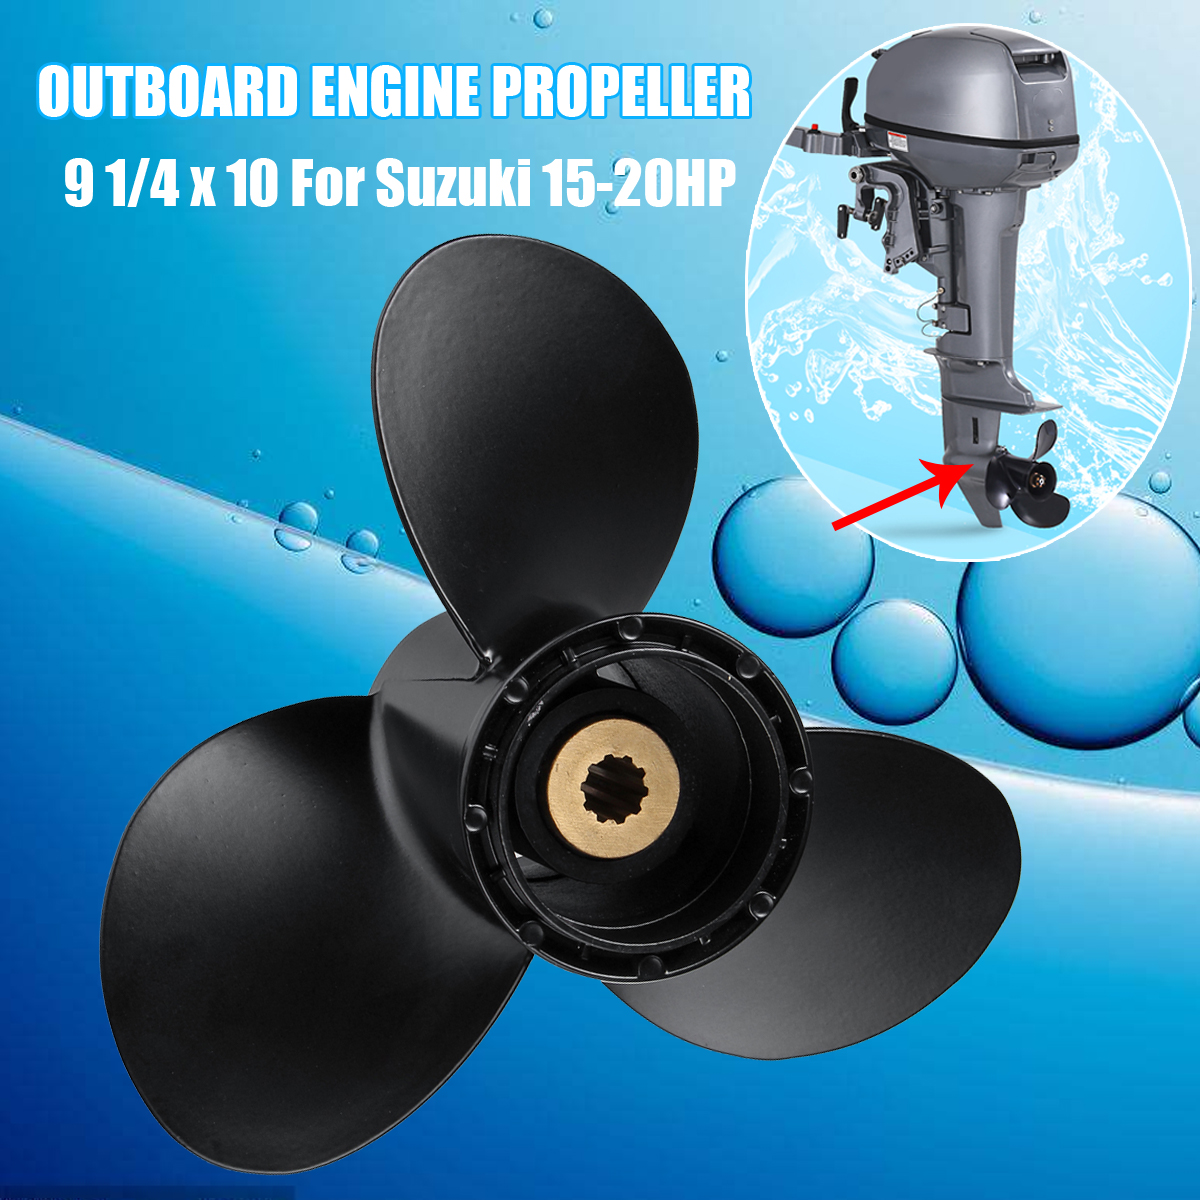 Marine Boat Engine Propeller 9 1/4 x 10 Outboard Engine Propeller For Suzuki 15-20HP electric outboard engine fishing boat propeller with outboard engine 12v 684w1750 rotationl speed dc motor